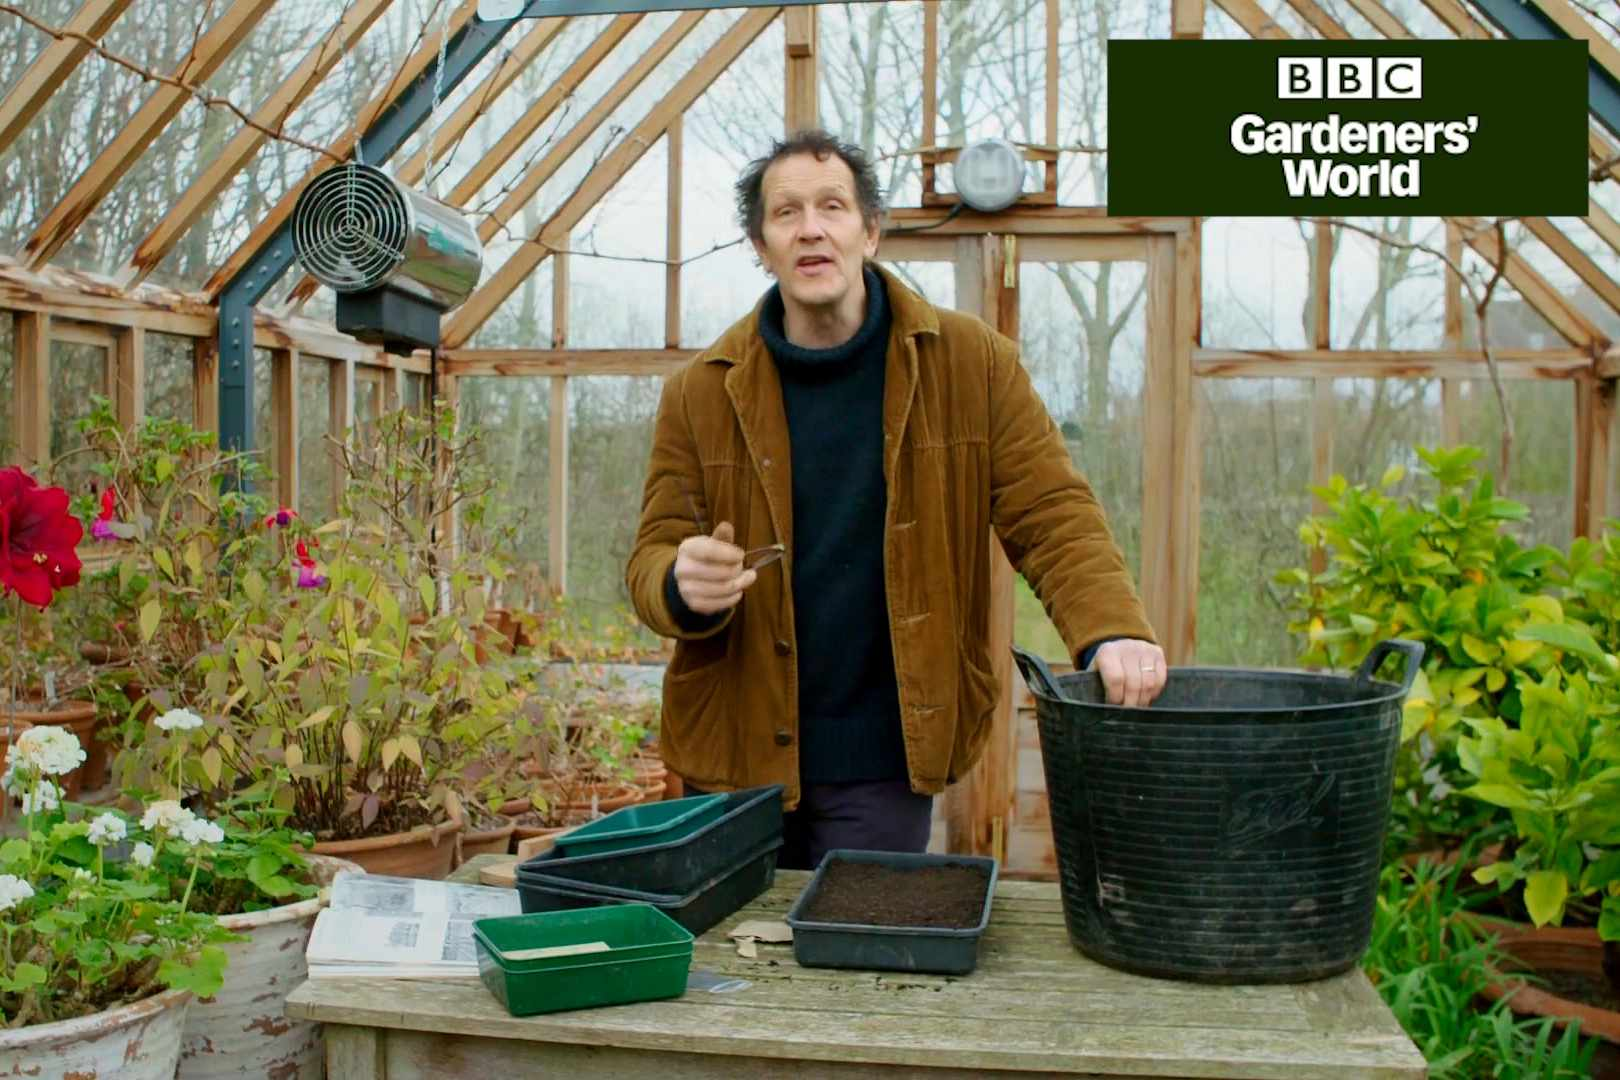 How to sow celery seed - Gardeners' World programme clip